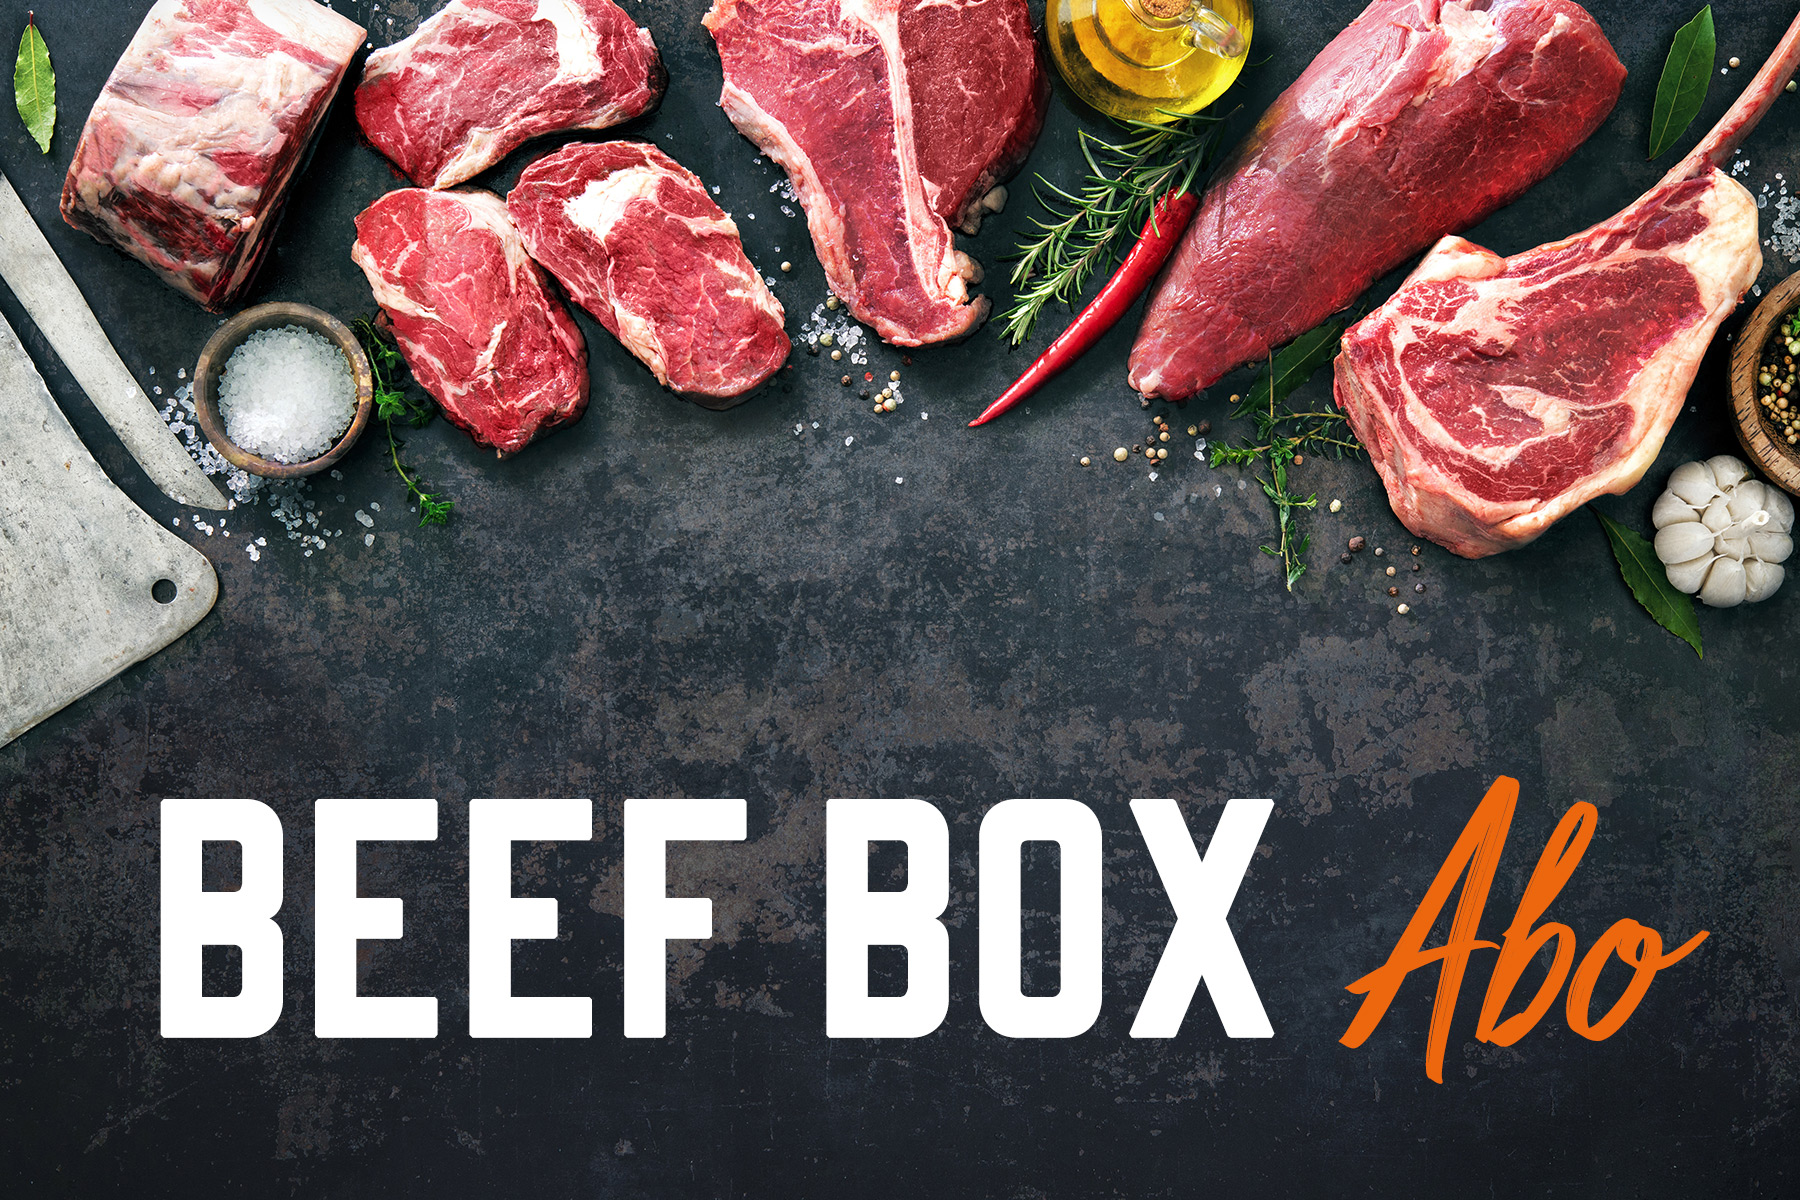 Beef Box Abo